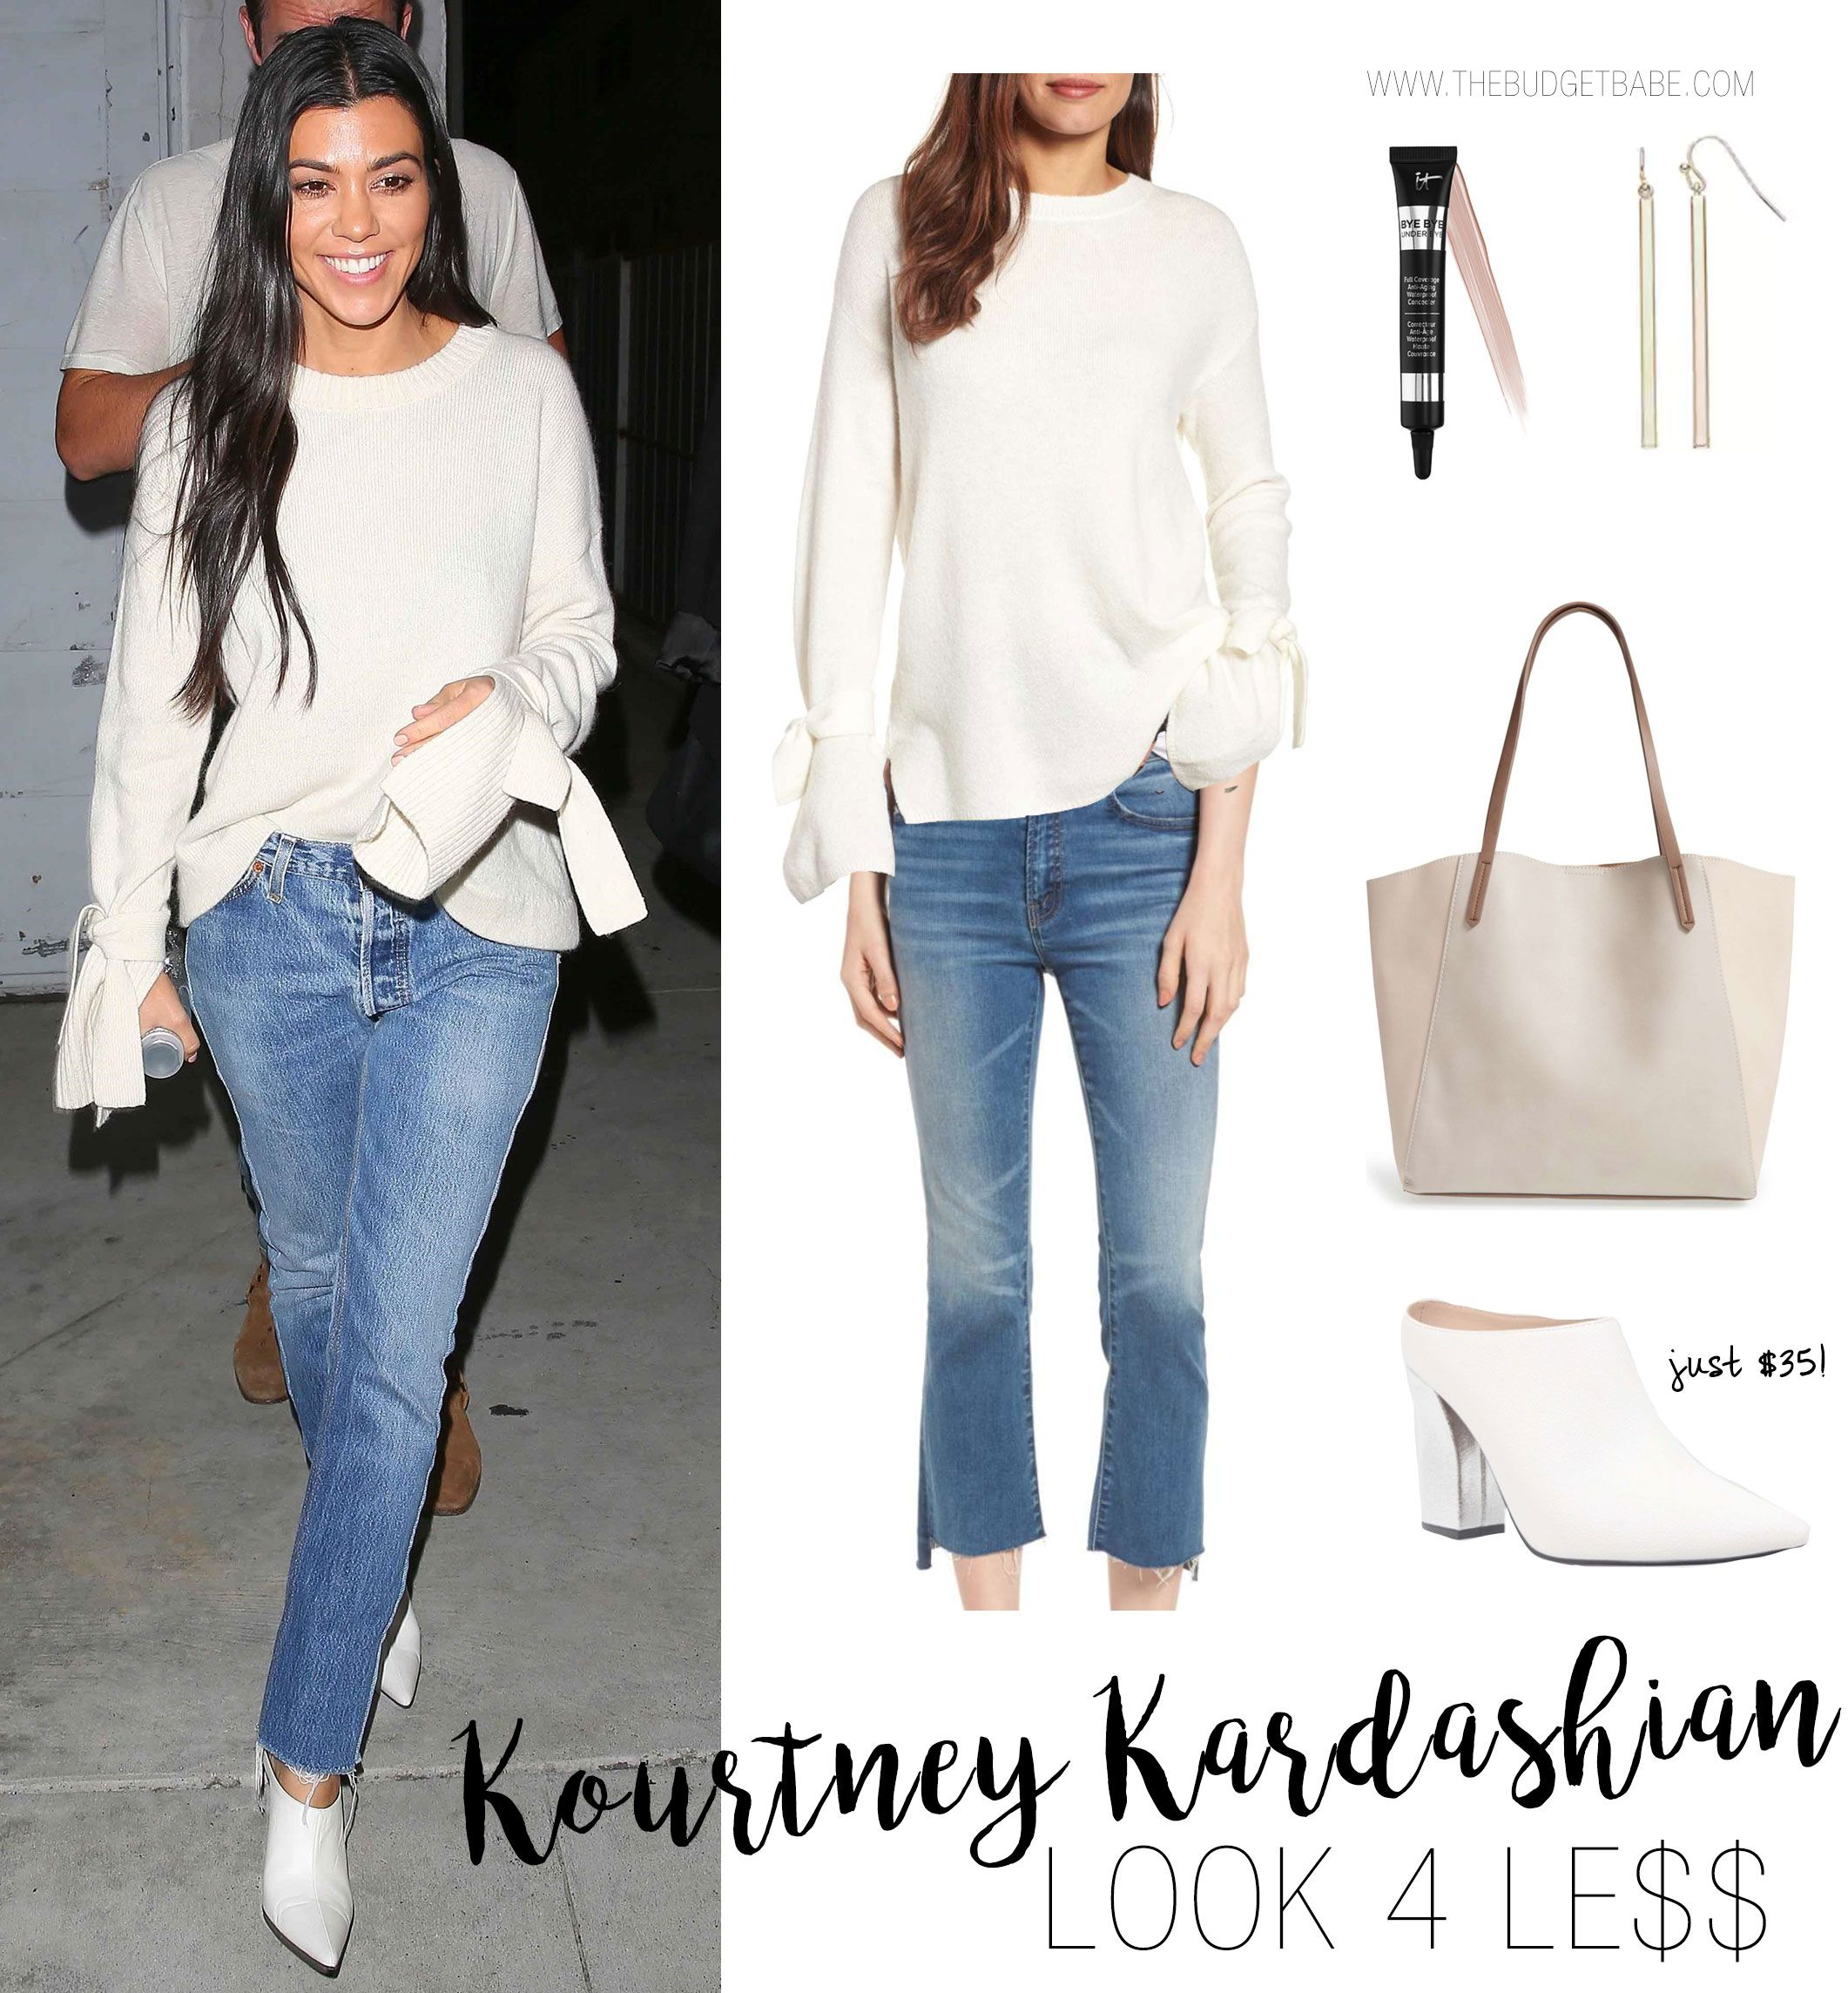 Kourtney Kardashian's Bell Sleeve Sweater and White Mules Outfit ...